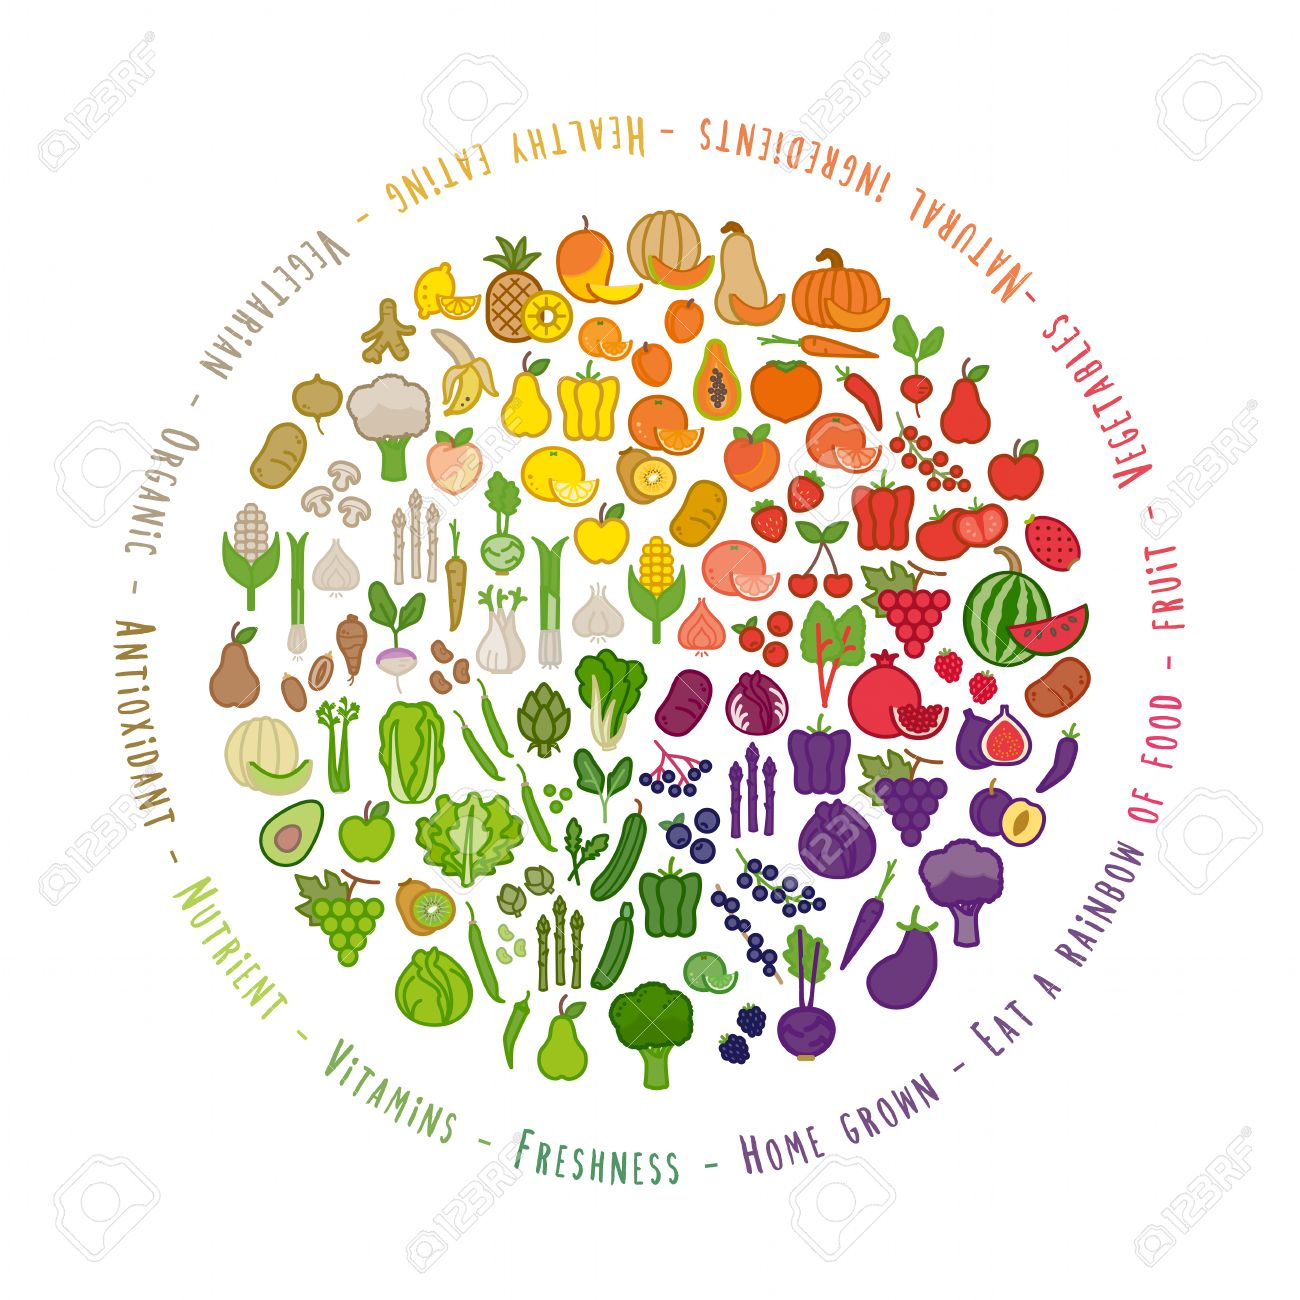 Fruit and vegetables color wheel with food icons, nutrition and healthy eating concept - 40615616